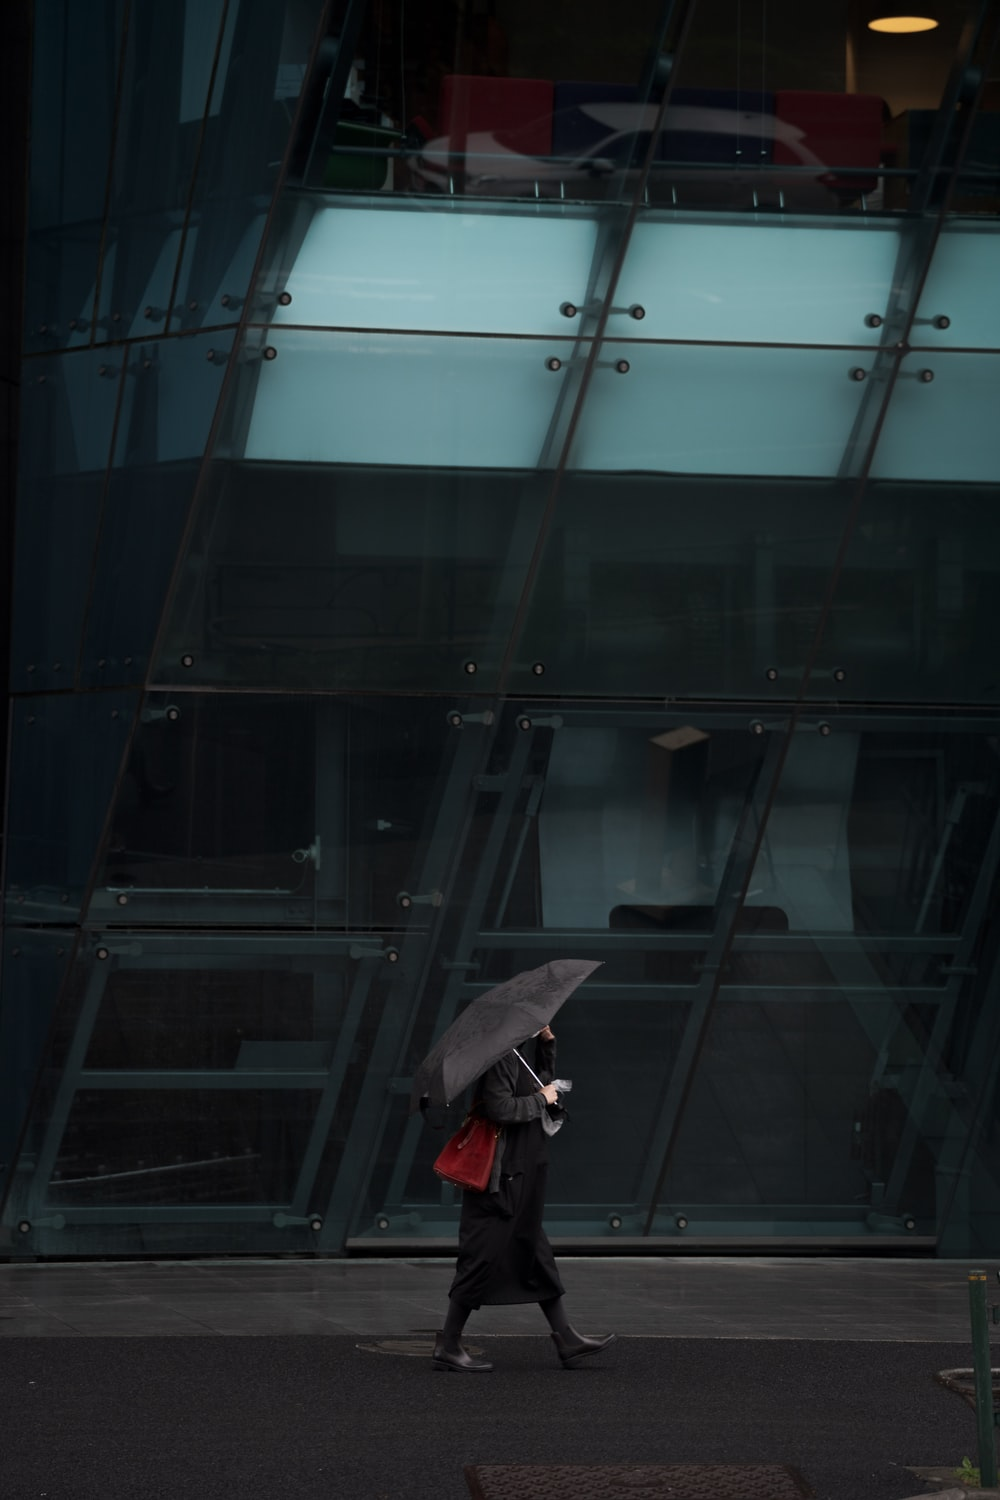 person in black jacket and black pants holding umbrella